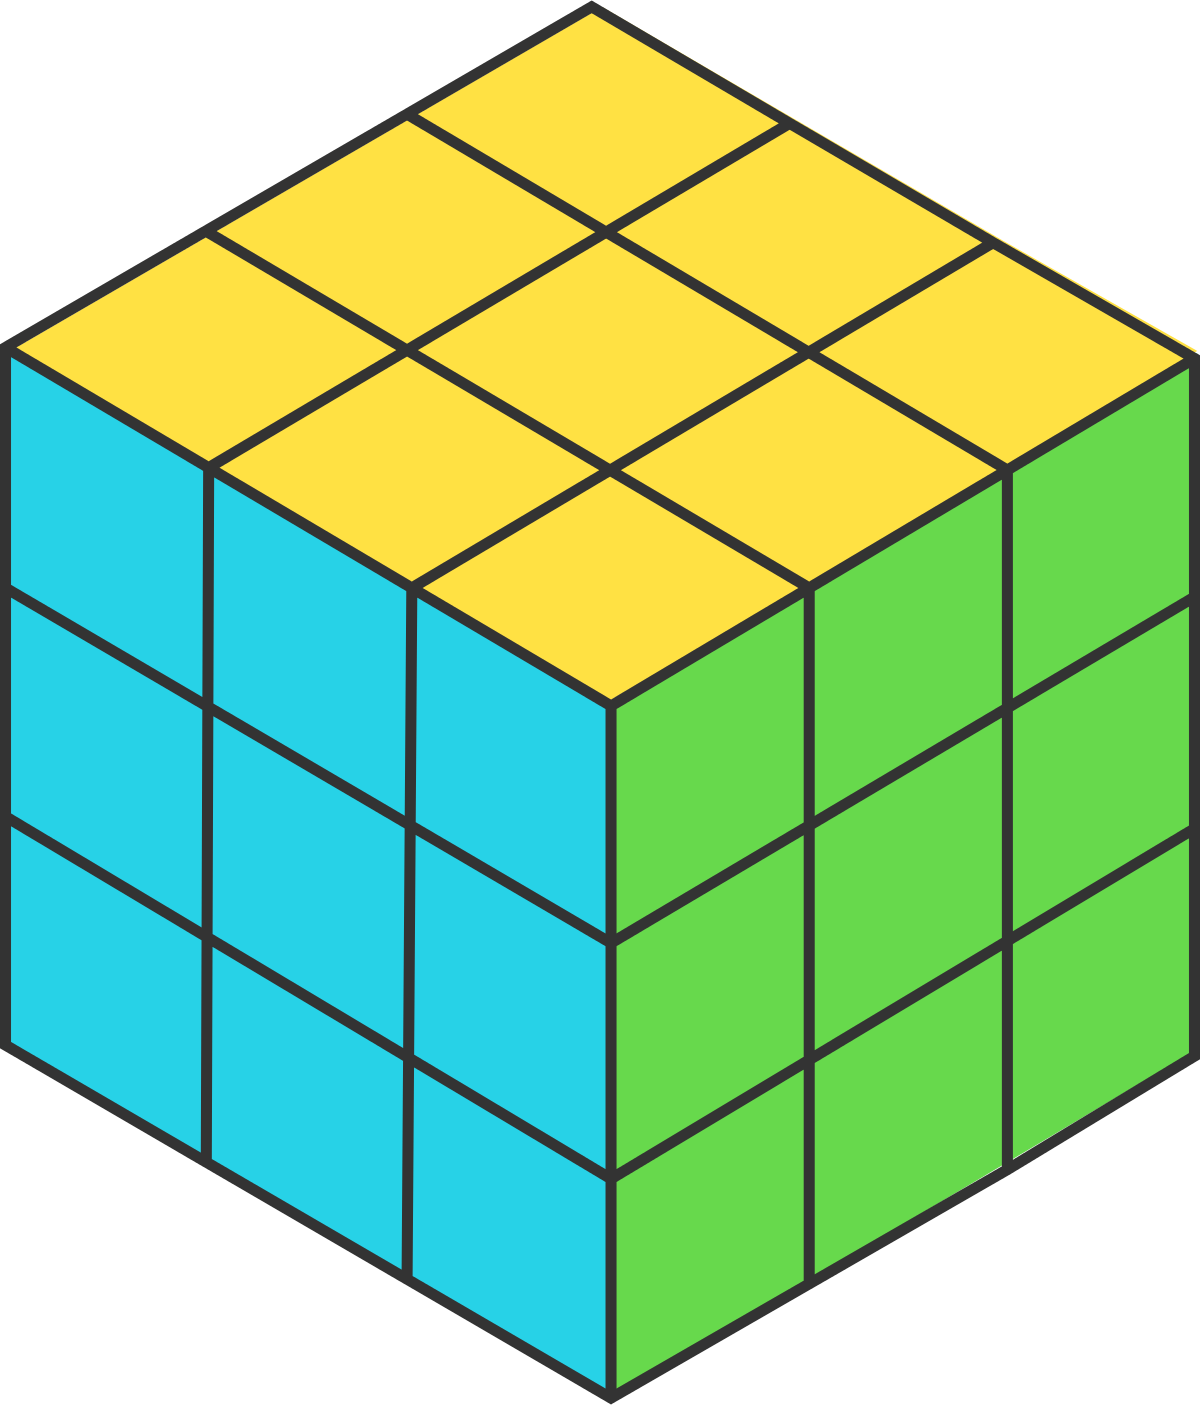 One clipart unit cube, One unit cube Transparent FREE for.